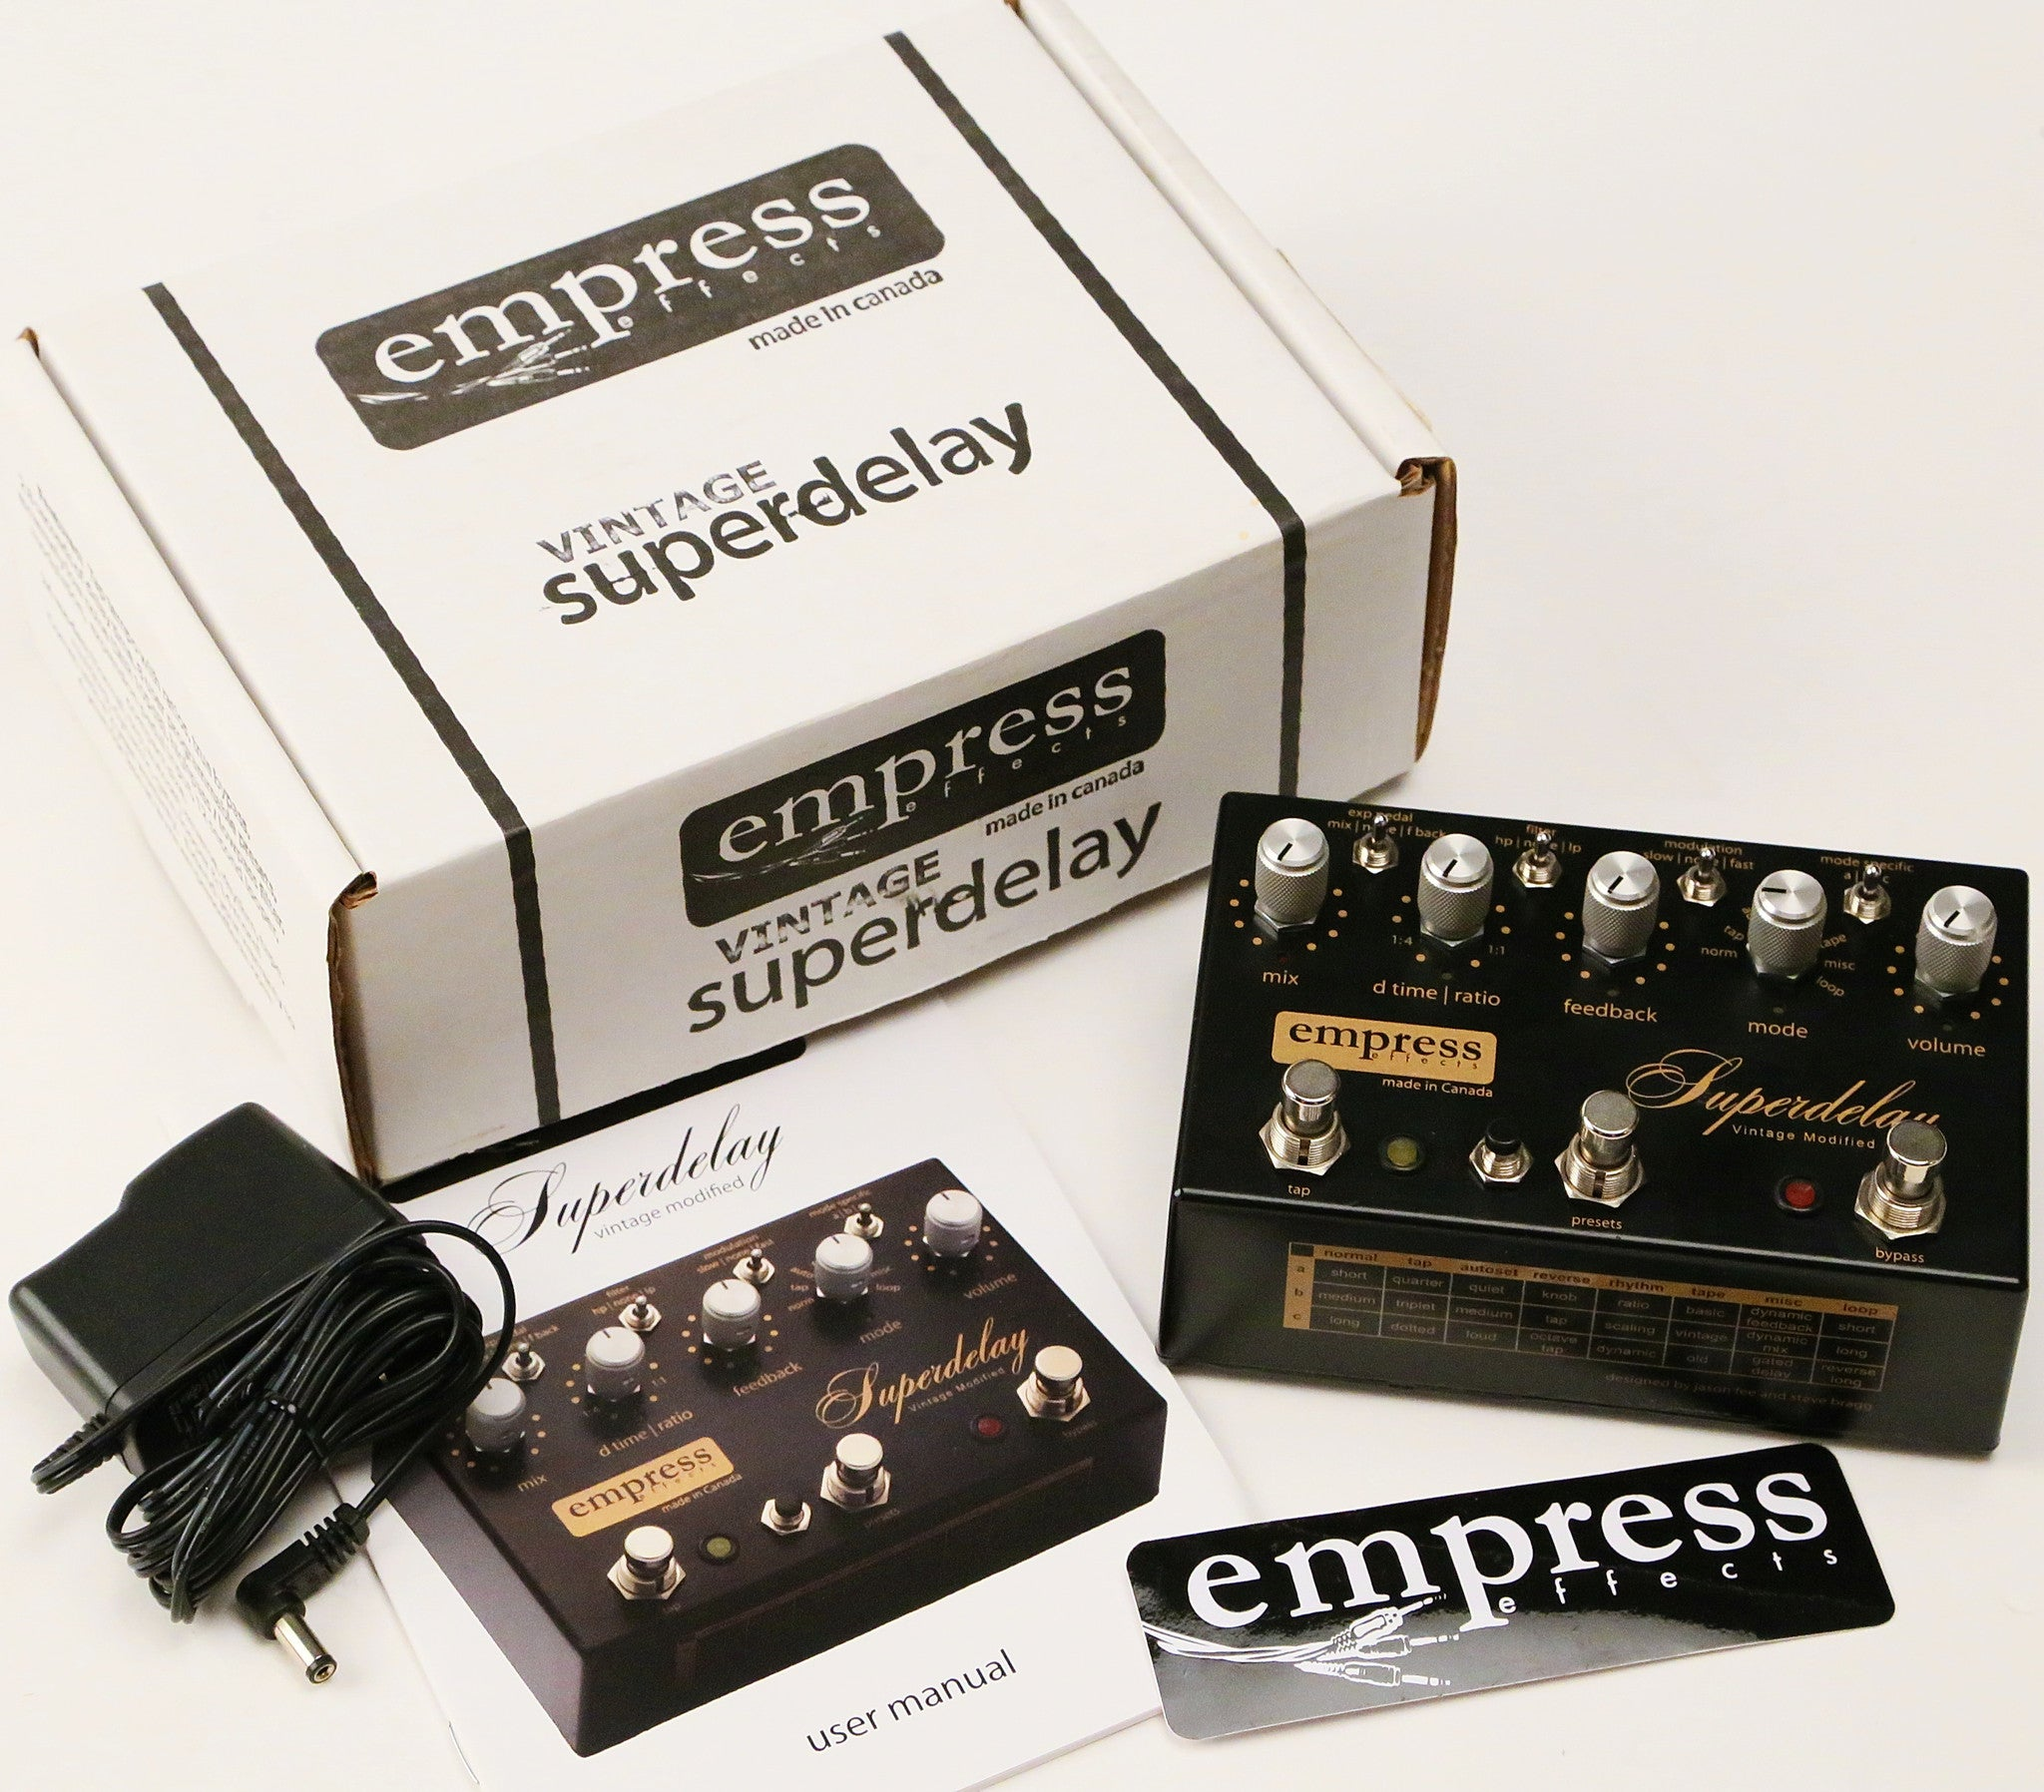 Empress Superdelay VM